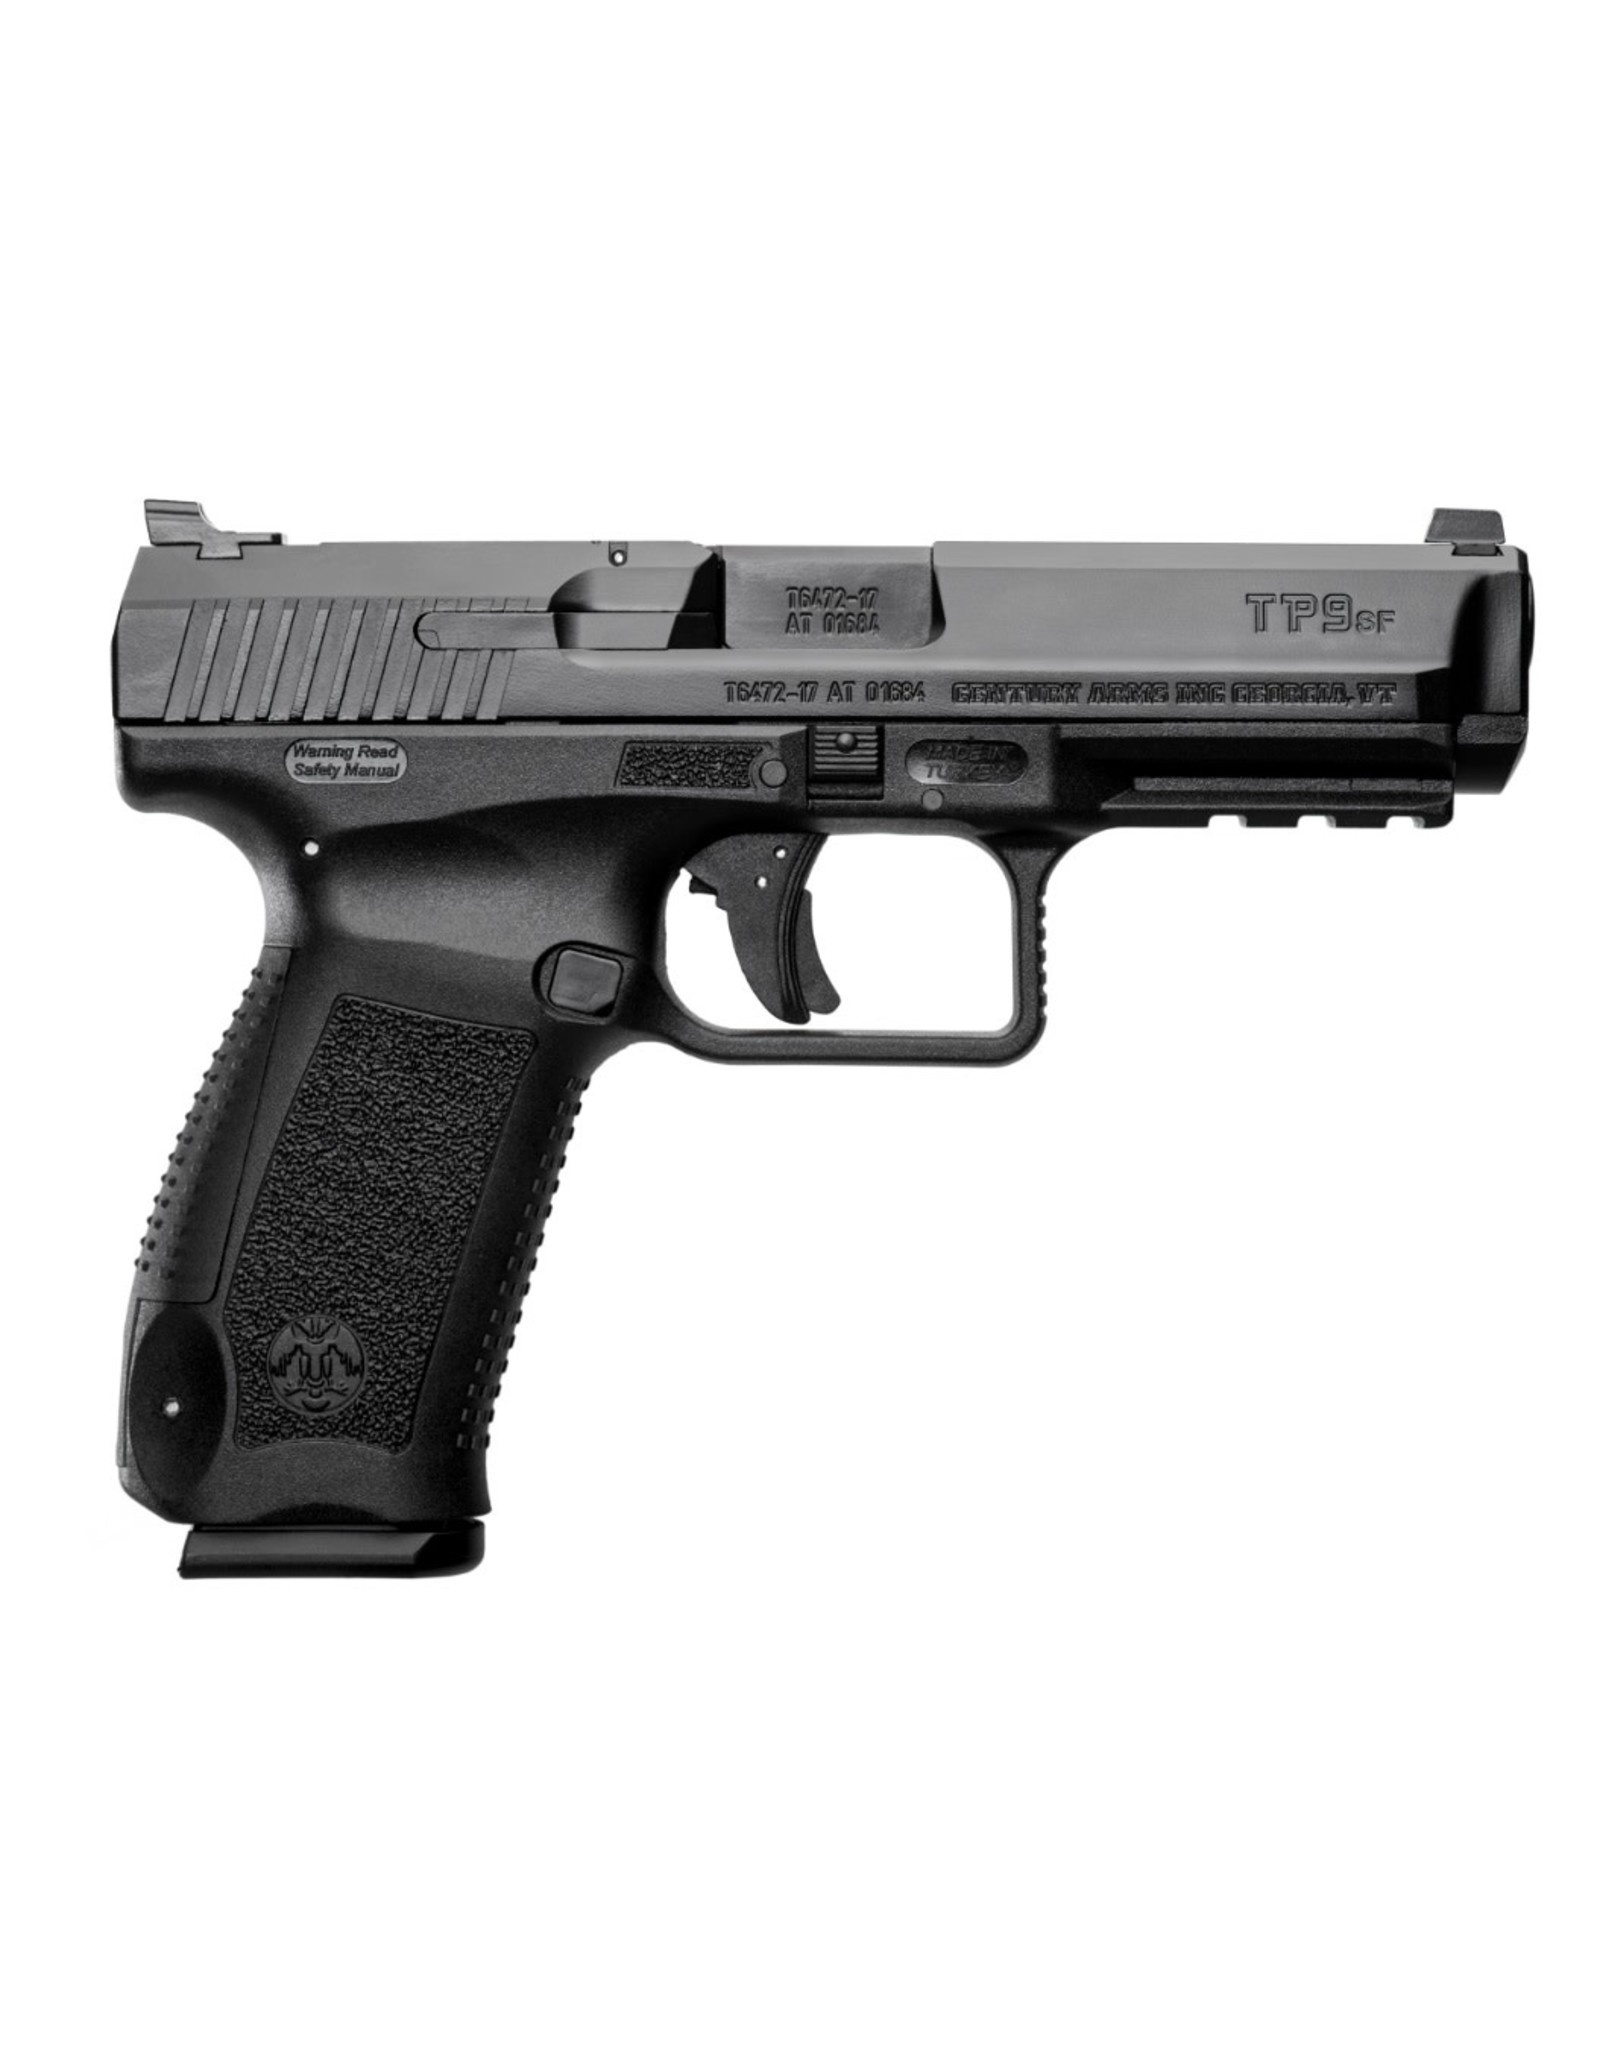 "Canik TP9SF 9mm 18+1 Round 4.47"" bbl w/ Holster"